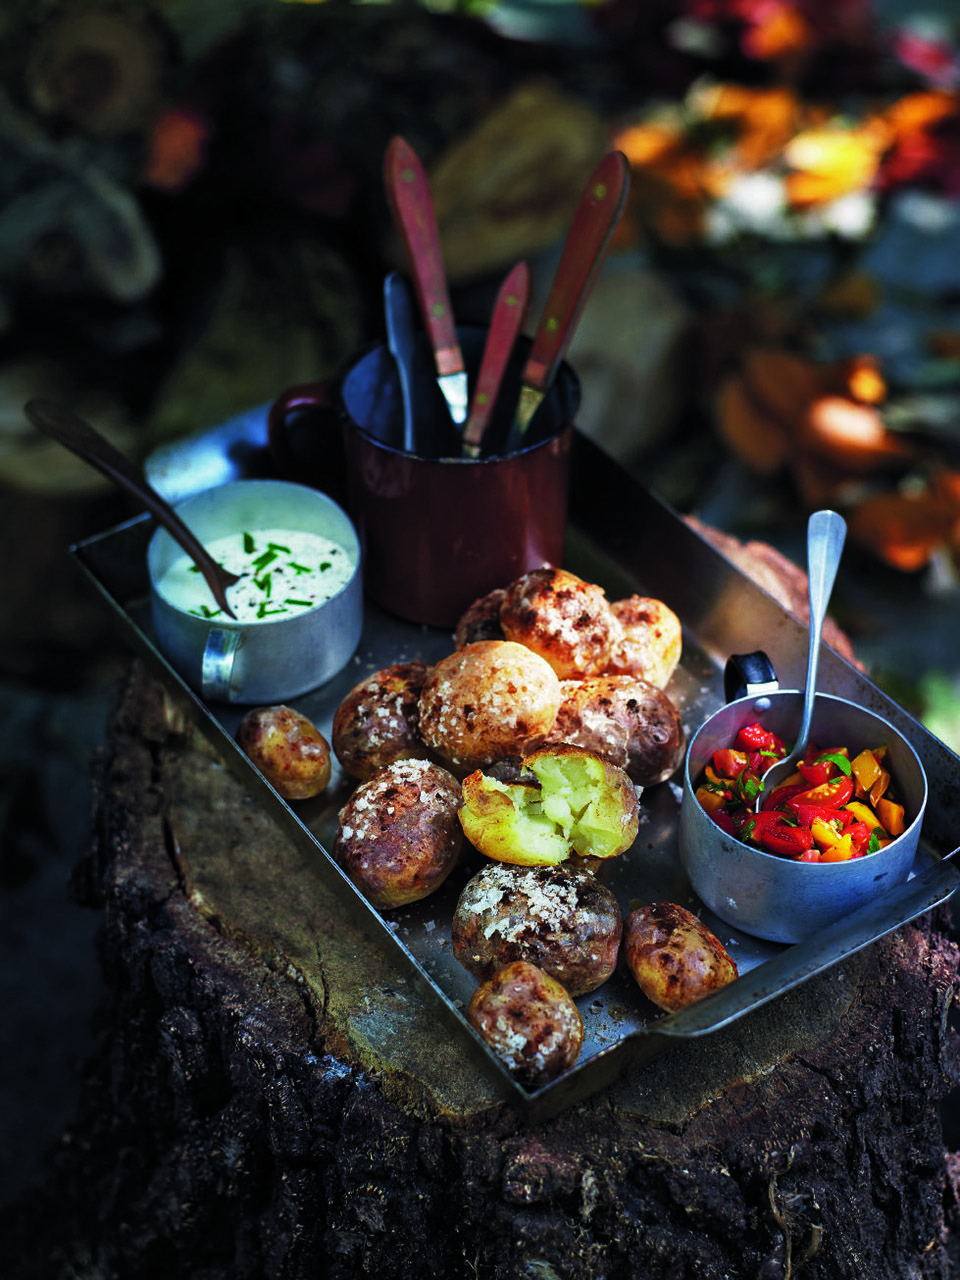 Fire-baked potatoes with soured cream and fiery salsa recipe | delicious. magazine